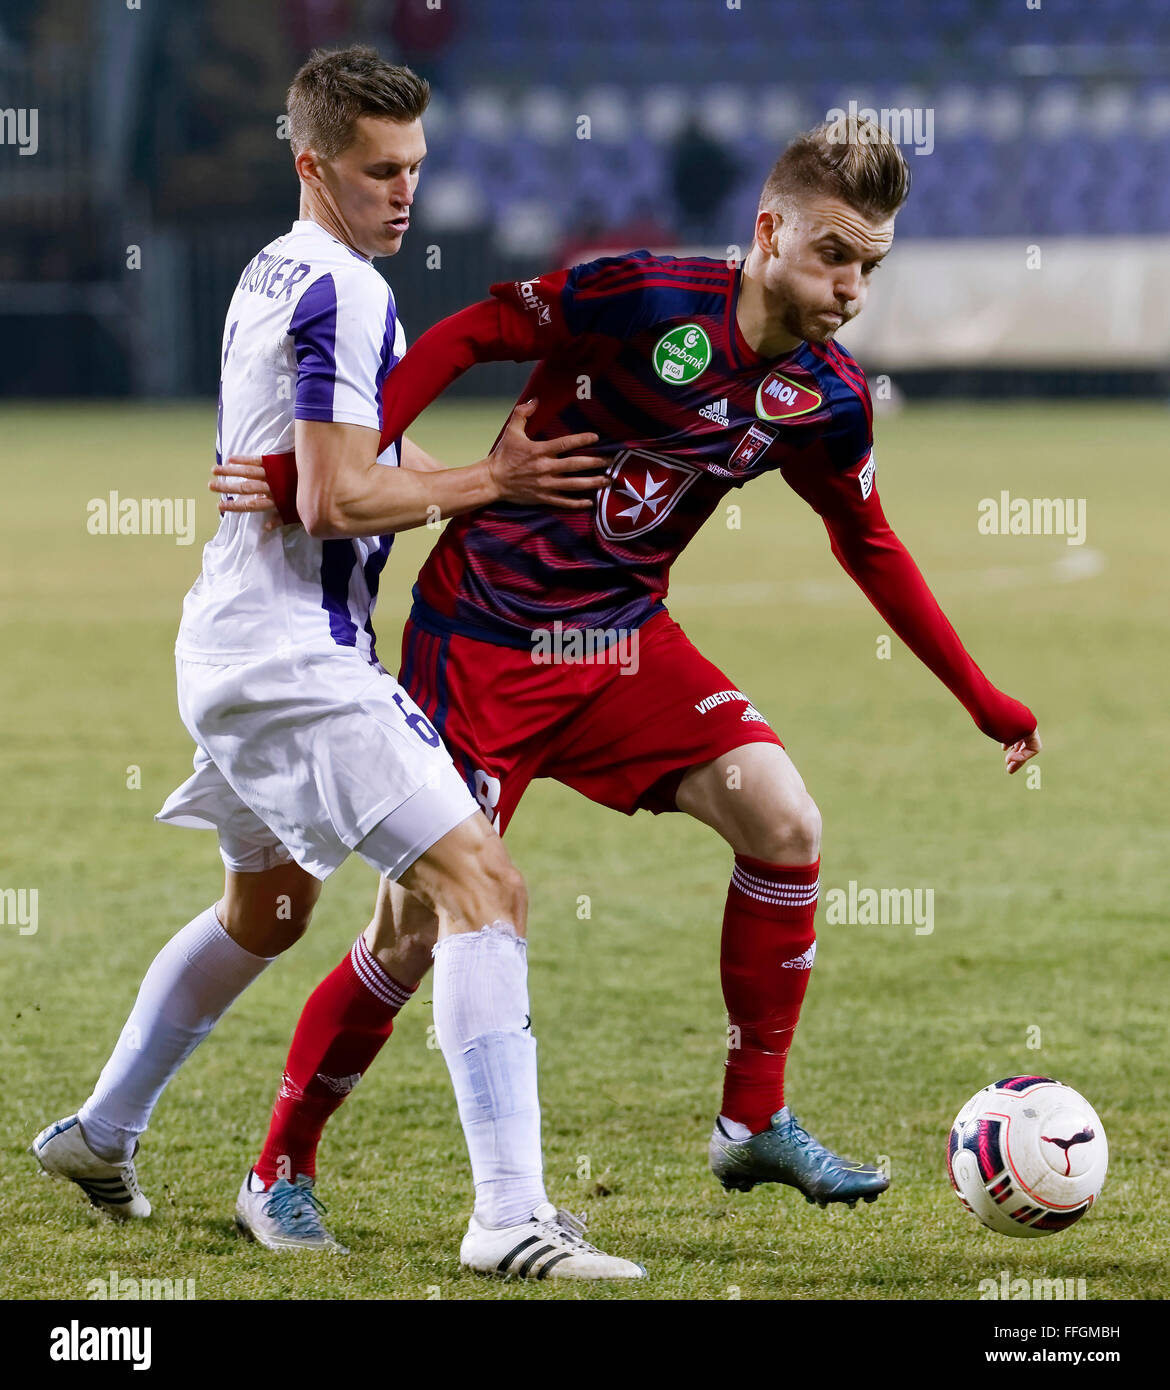 Budapest, Hungary. 13th Feb, 2016. Jozsef Windecker of Ujpest (l) tries to stop Zsolt Haraszti of Videoton during - Stock Image